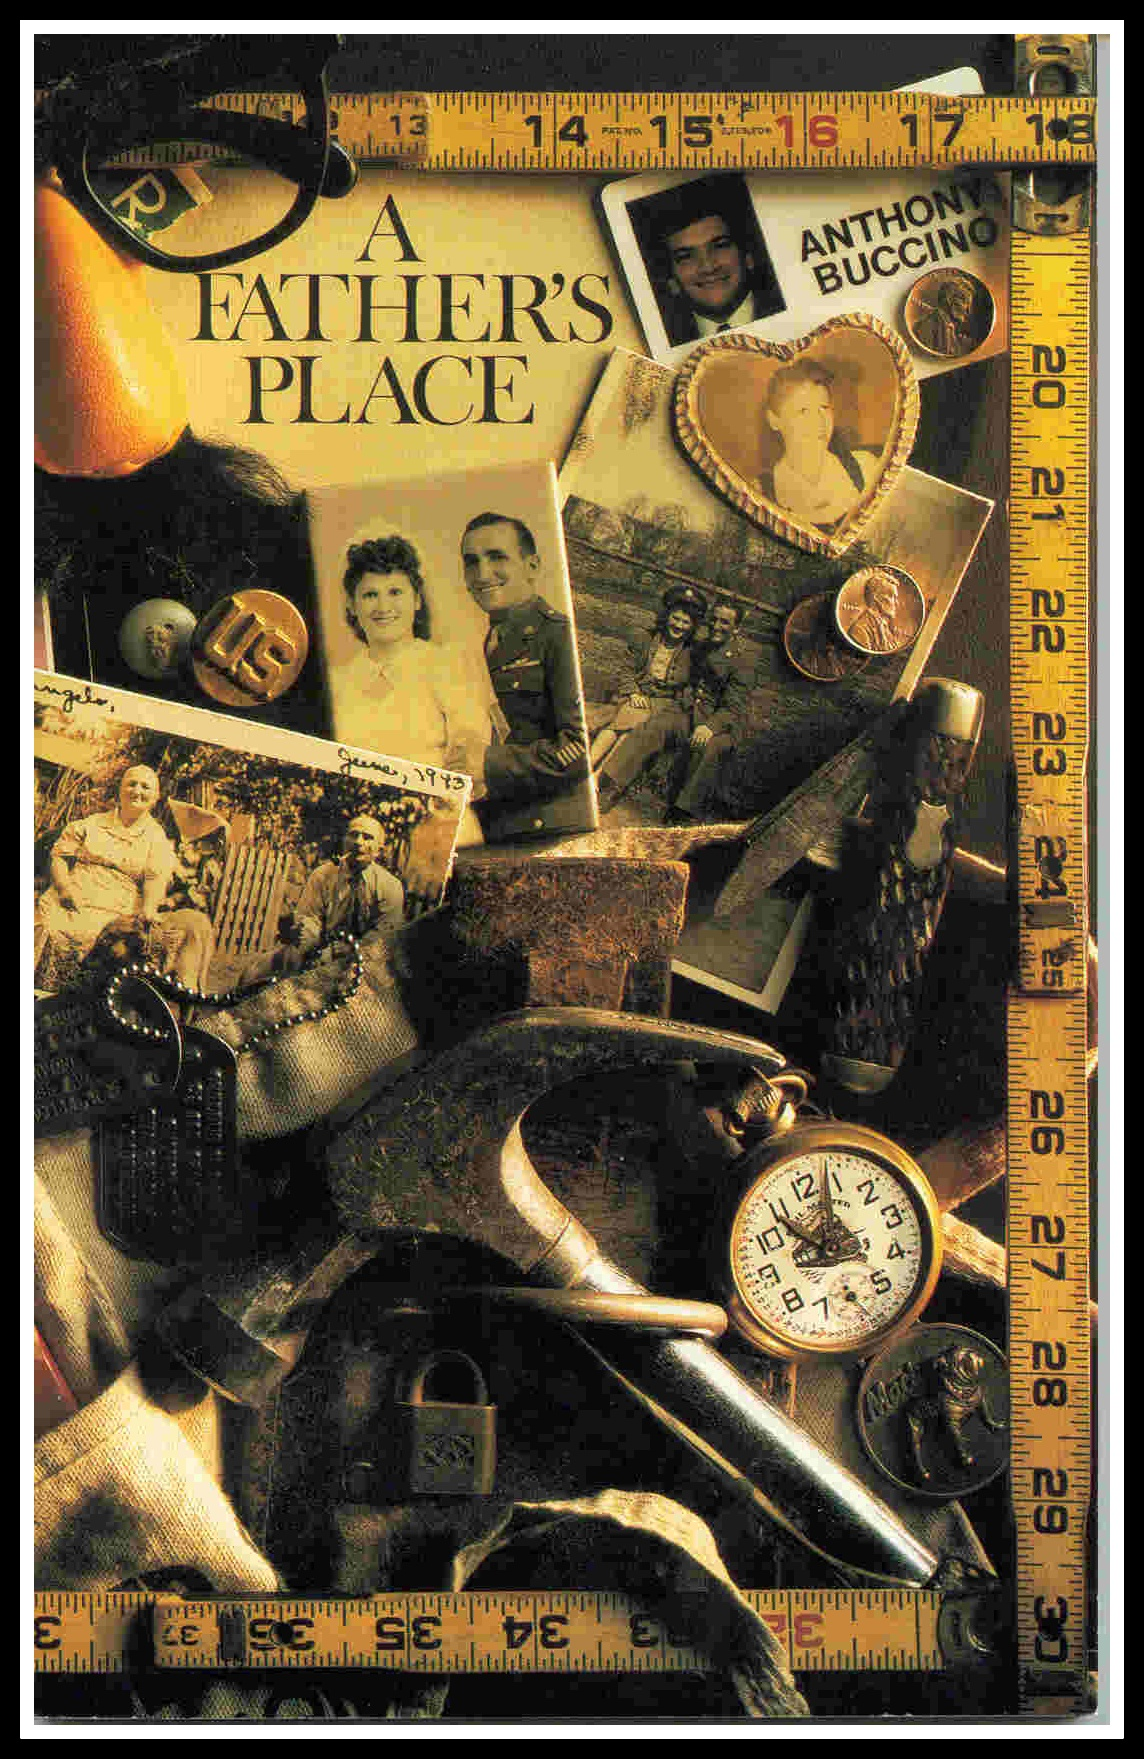 A Father's Place, An Eclectic Collection by Anthony Buccino